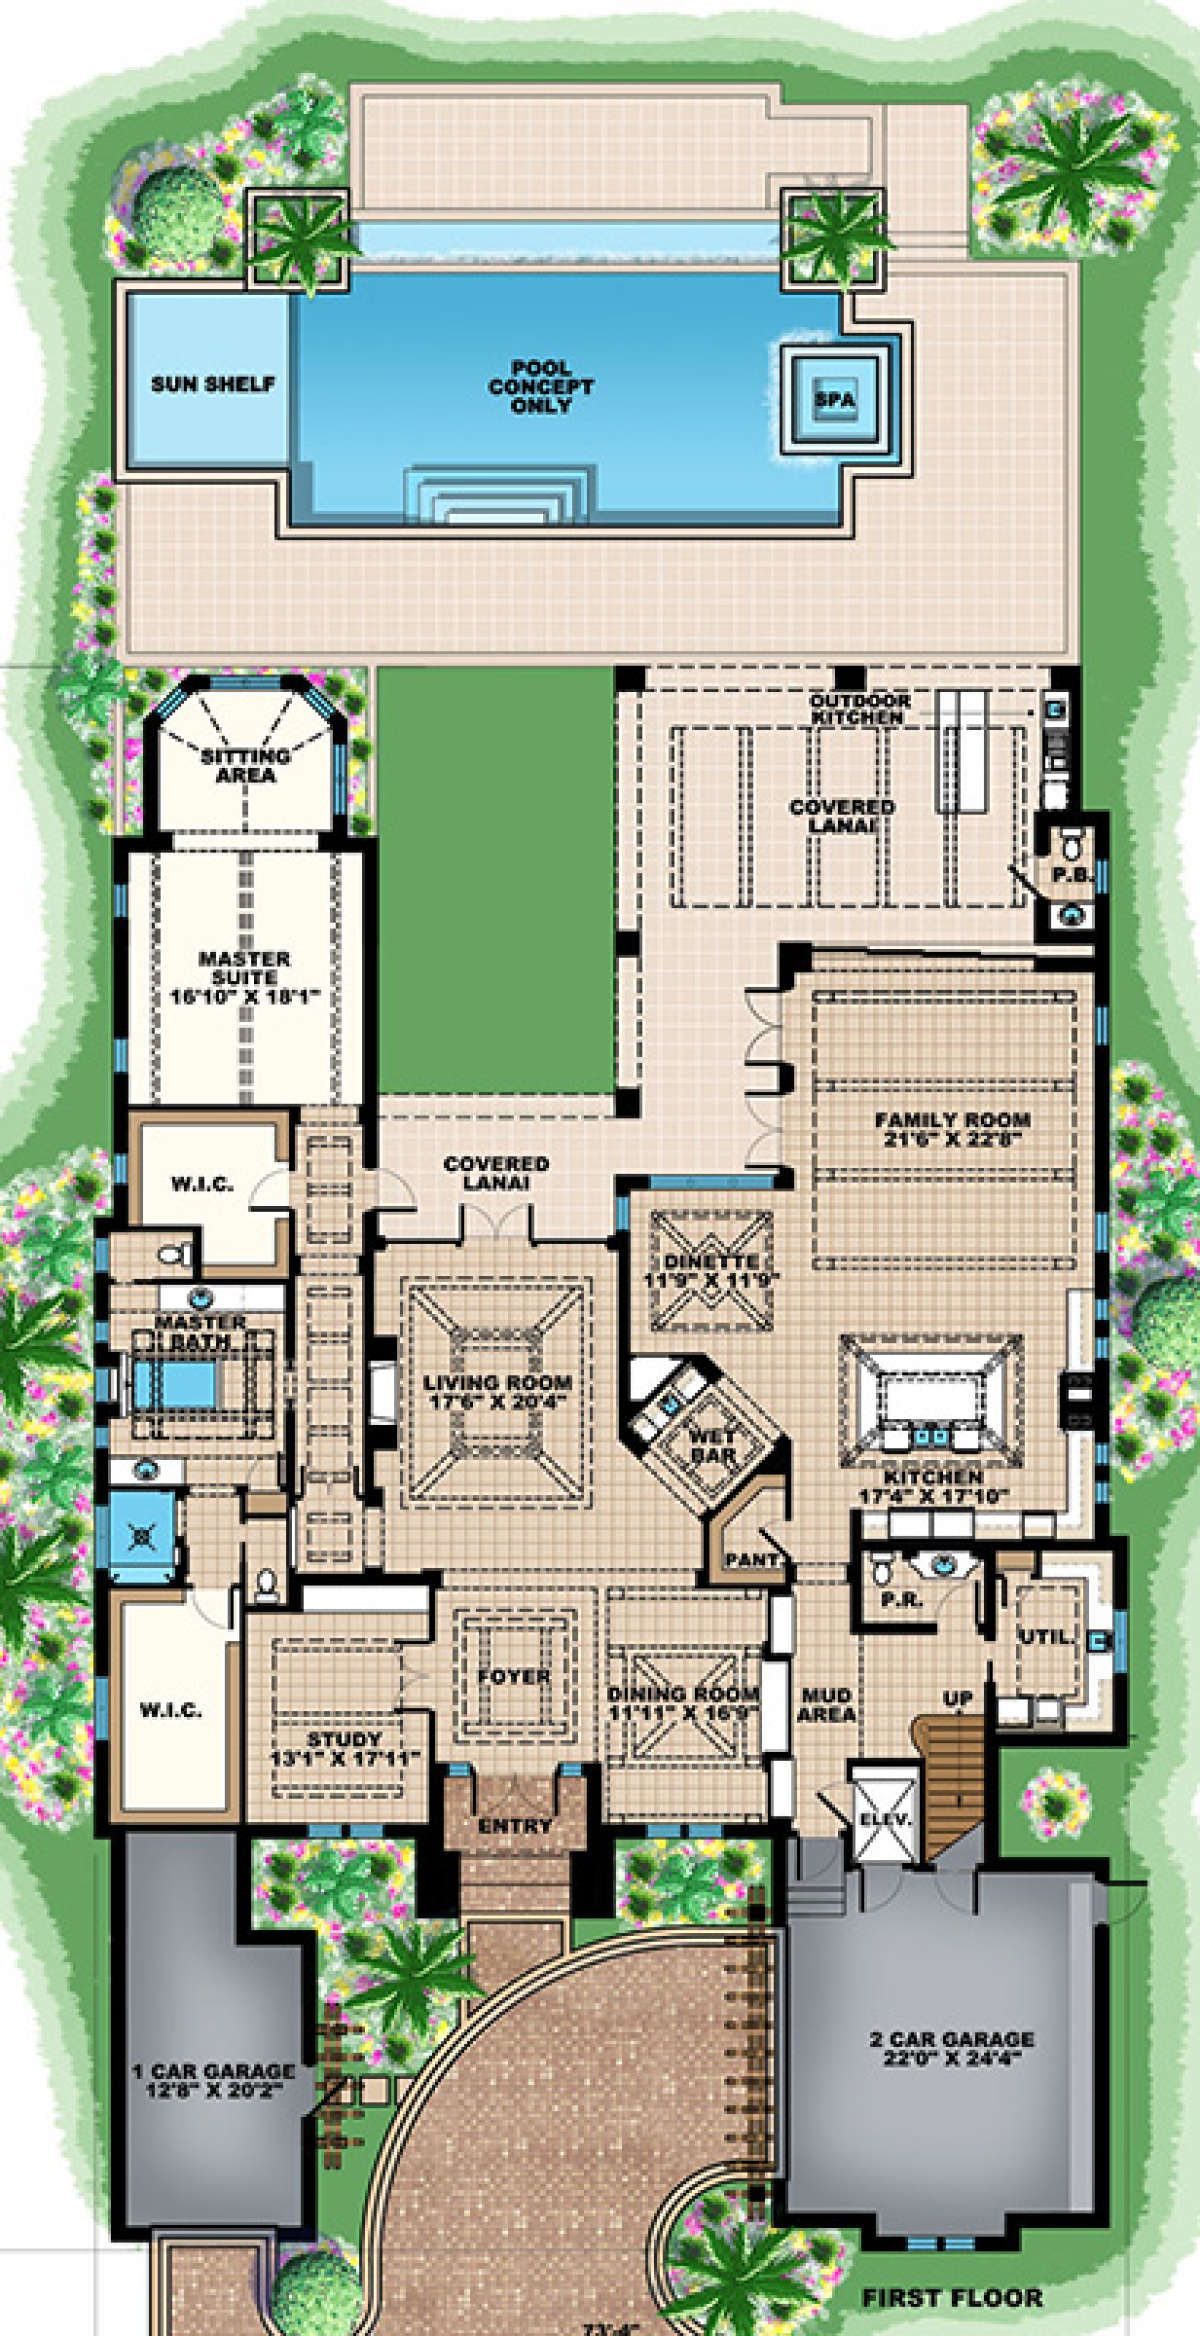 House Plan 1018 00246 Coastal Plan 6 833 Square Feet 5 Bedrooms 6 Bathrooms Minecraft House Plans House Layout Plans Florida House Plans